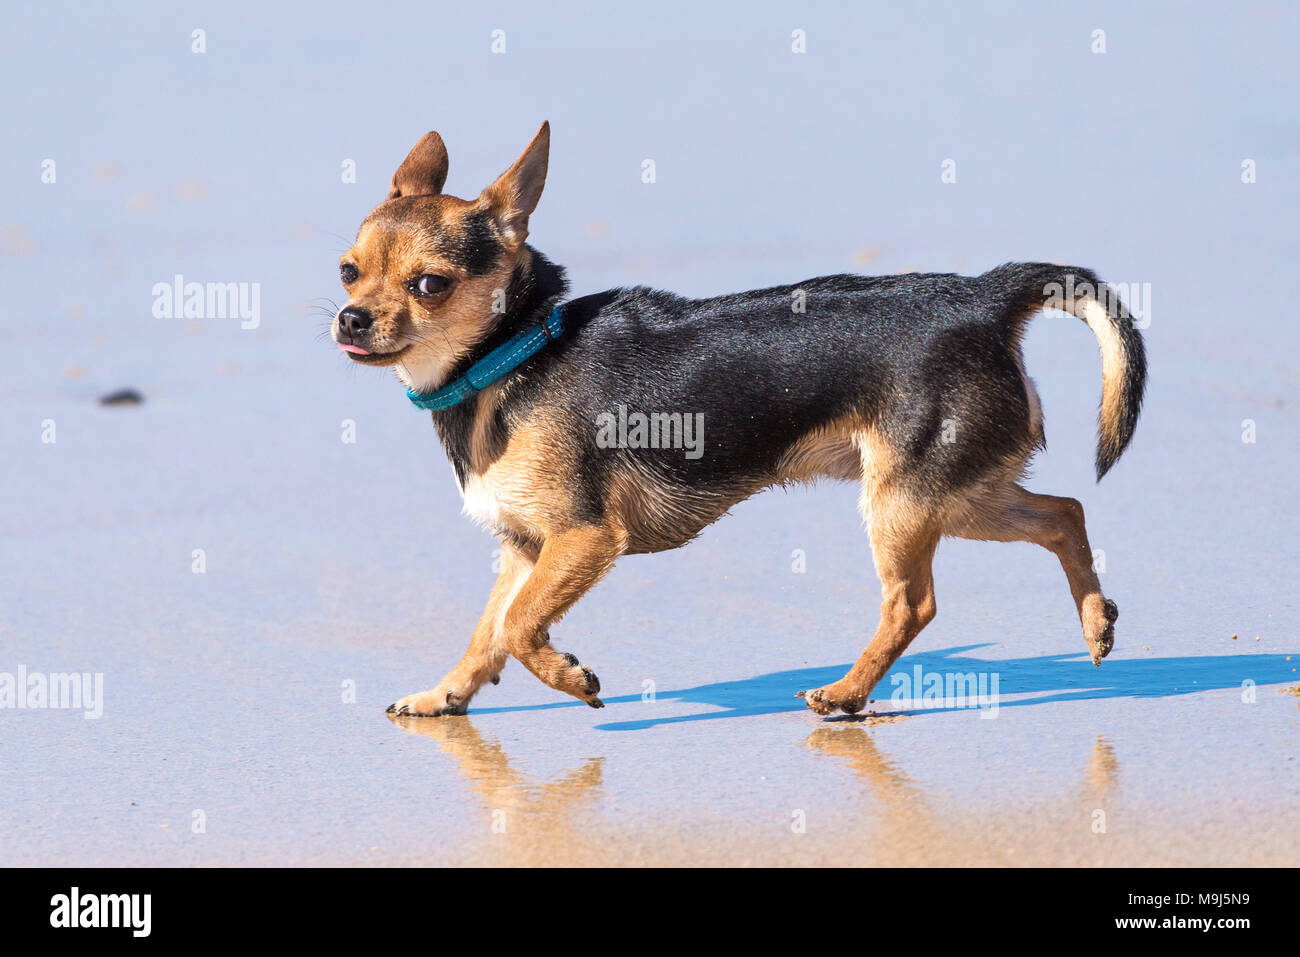 A Smooth Coat Chihuahua on a beach. - Stock Image